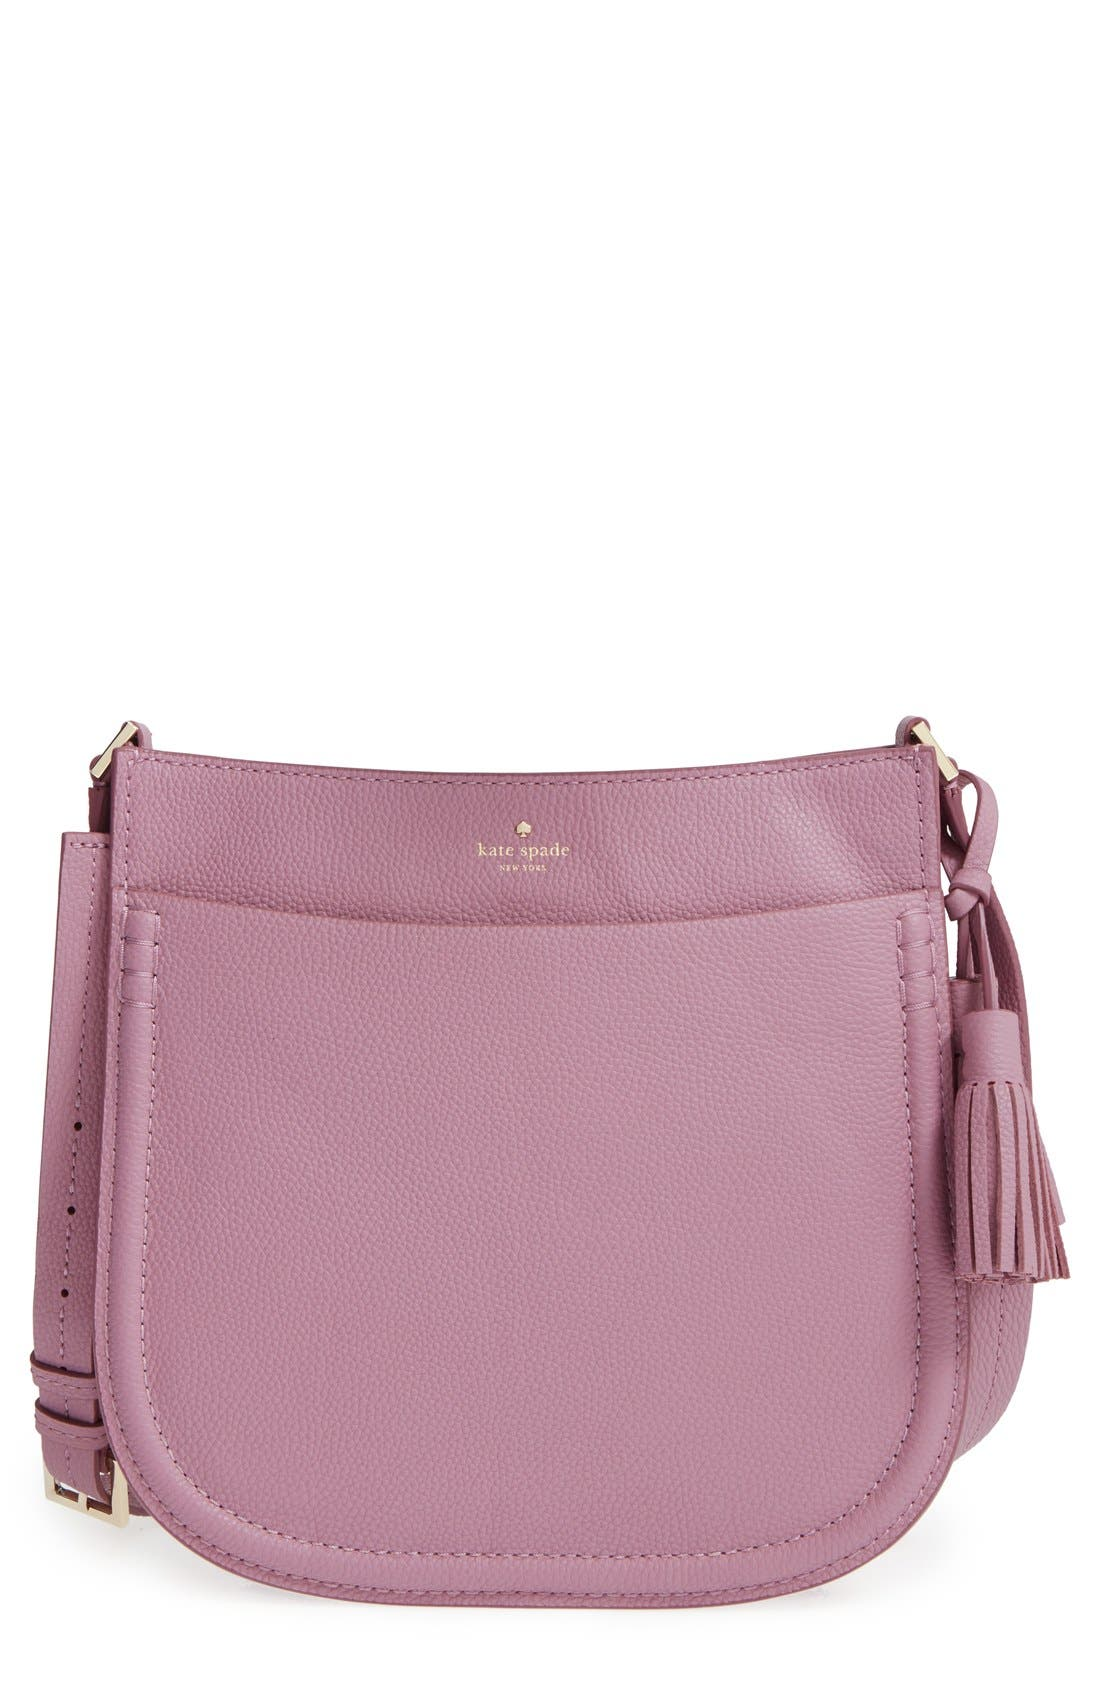 Main Image - kate spade new york 'orchard street - hemsley' leather shoulder bag